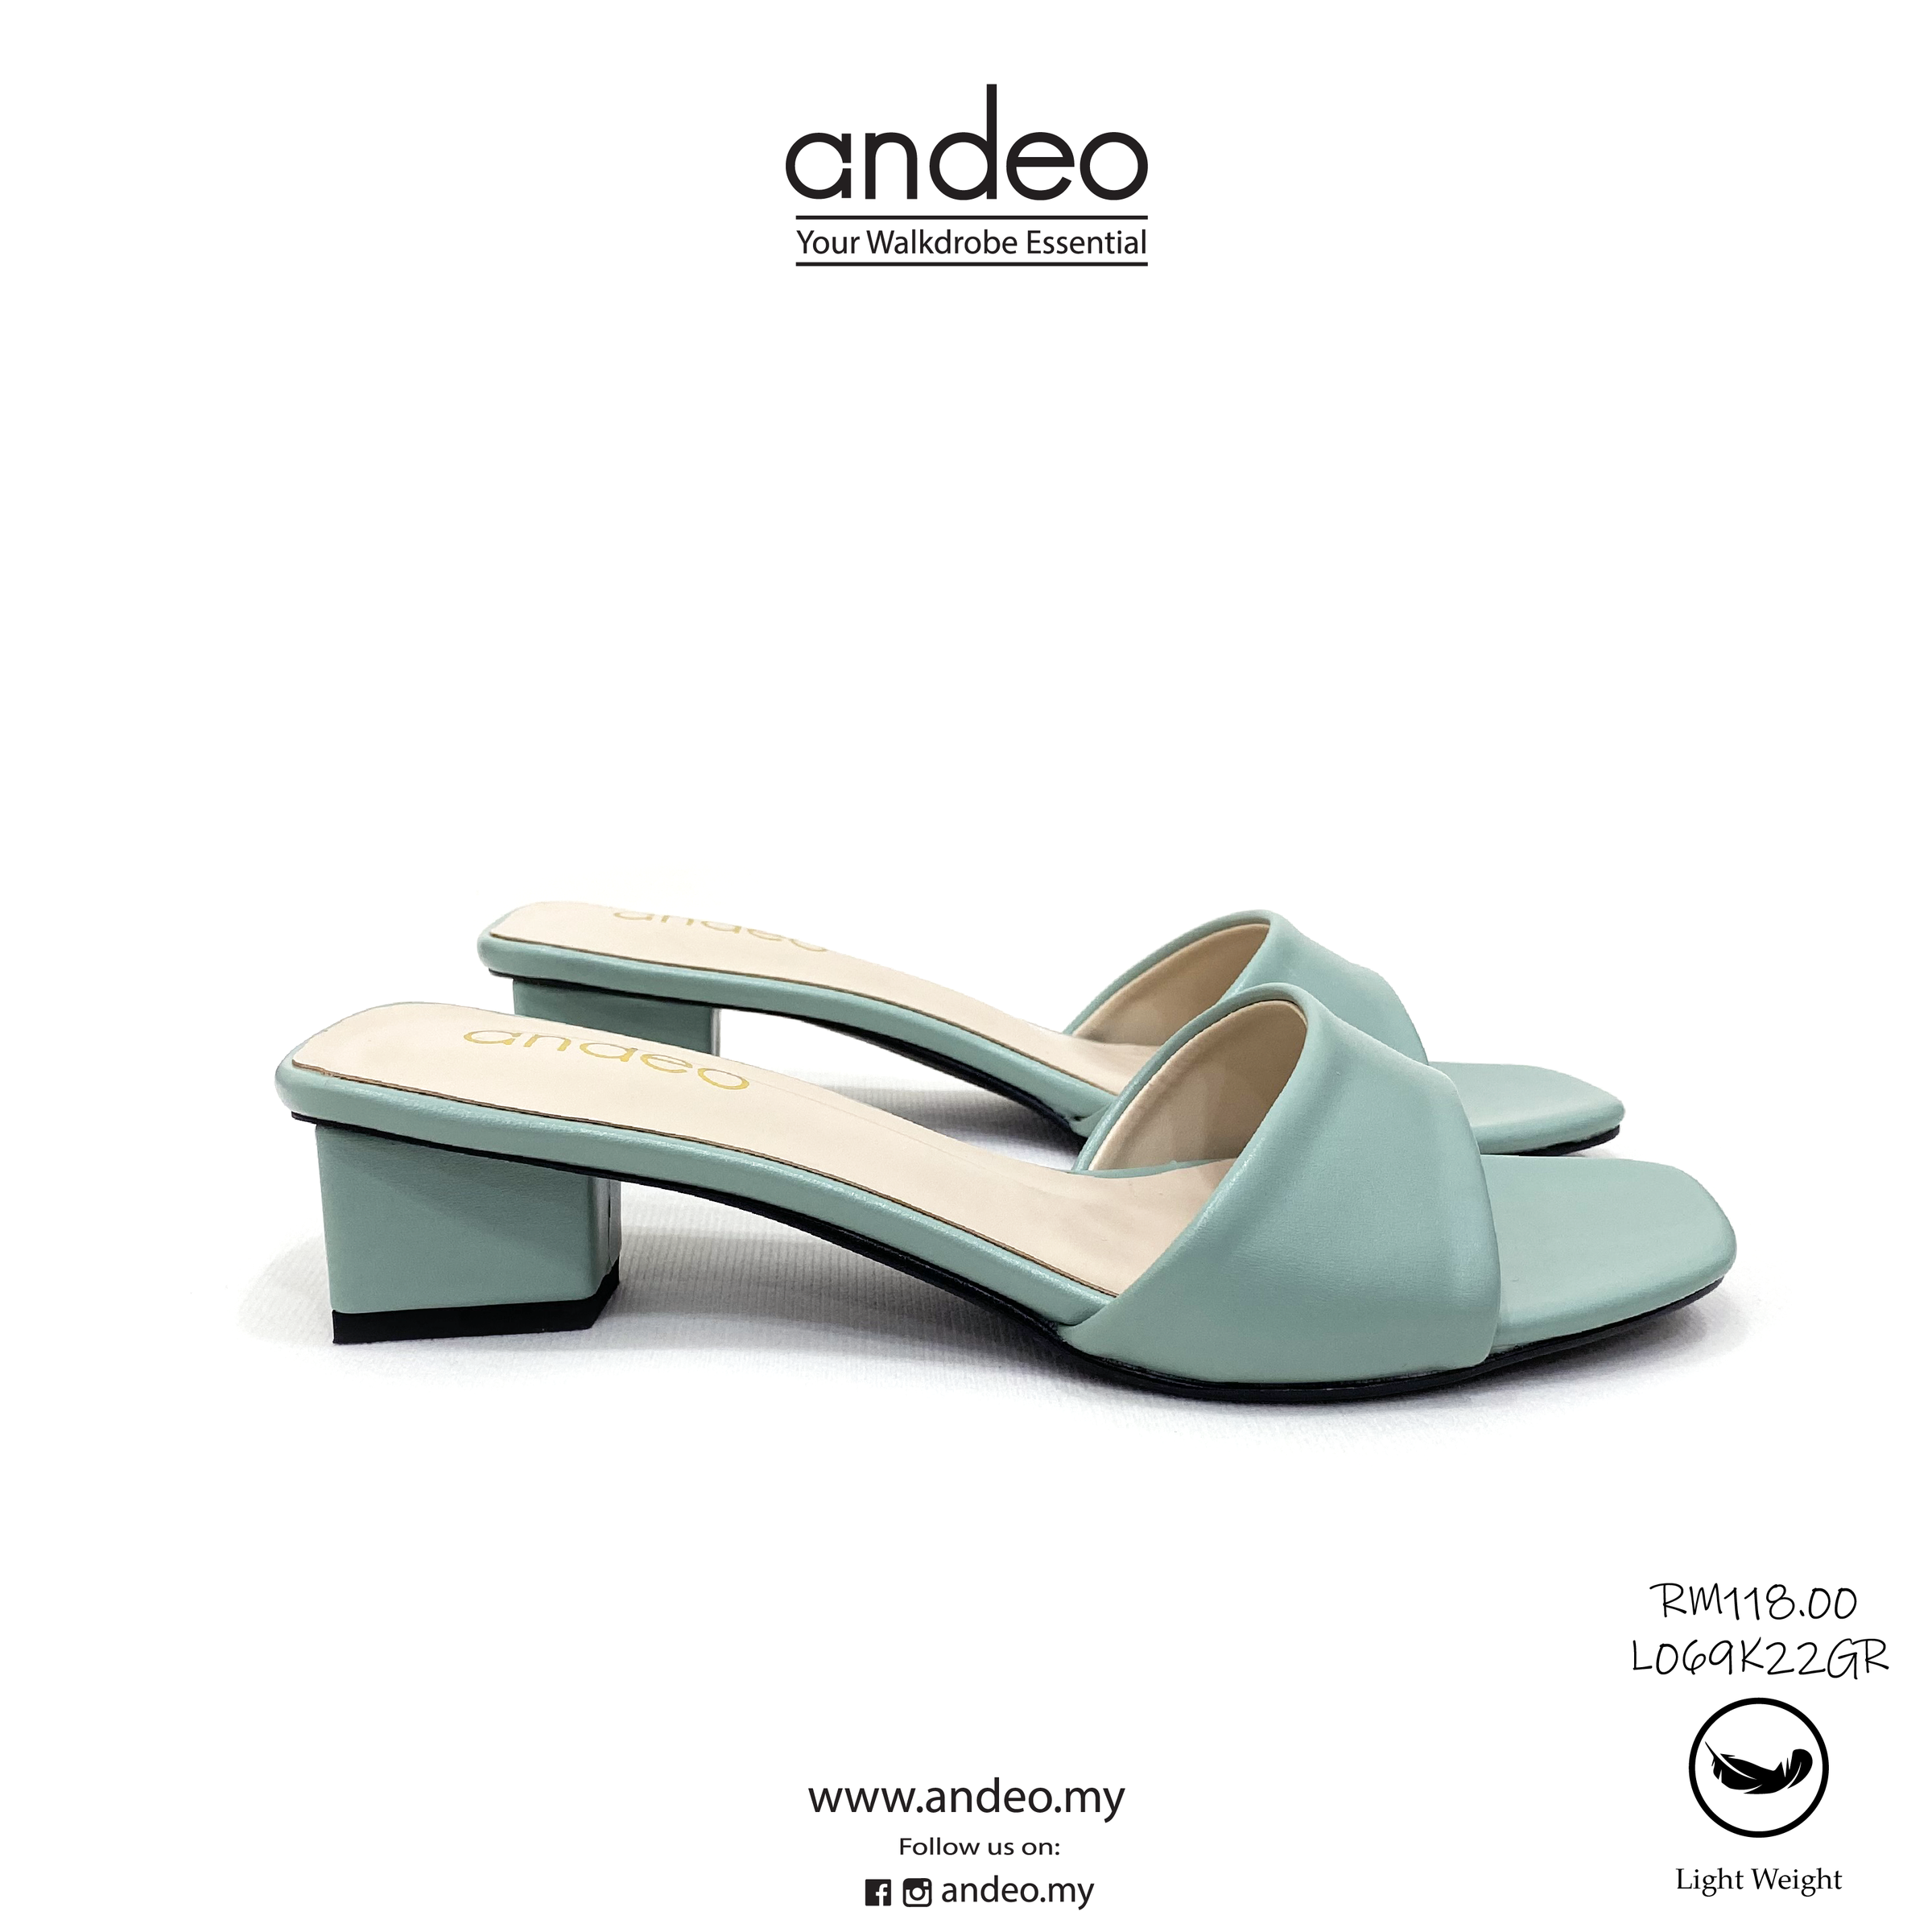 ANDEO FB PRODUCT L069K22-03.png